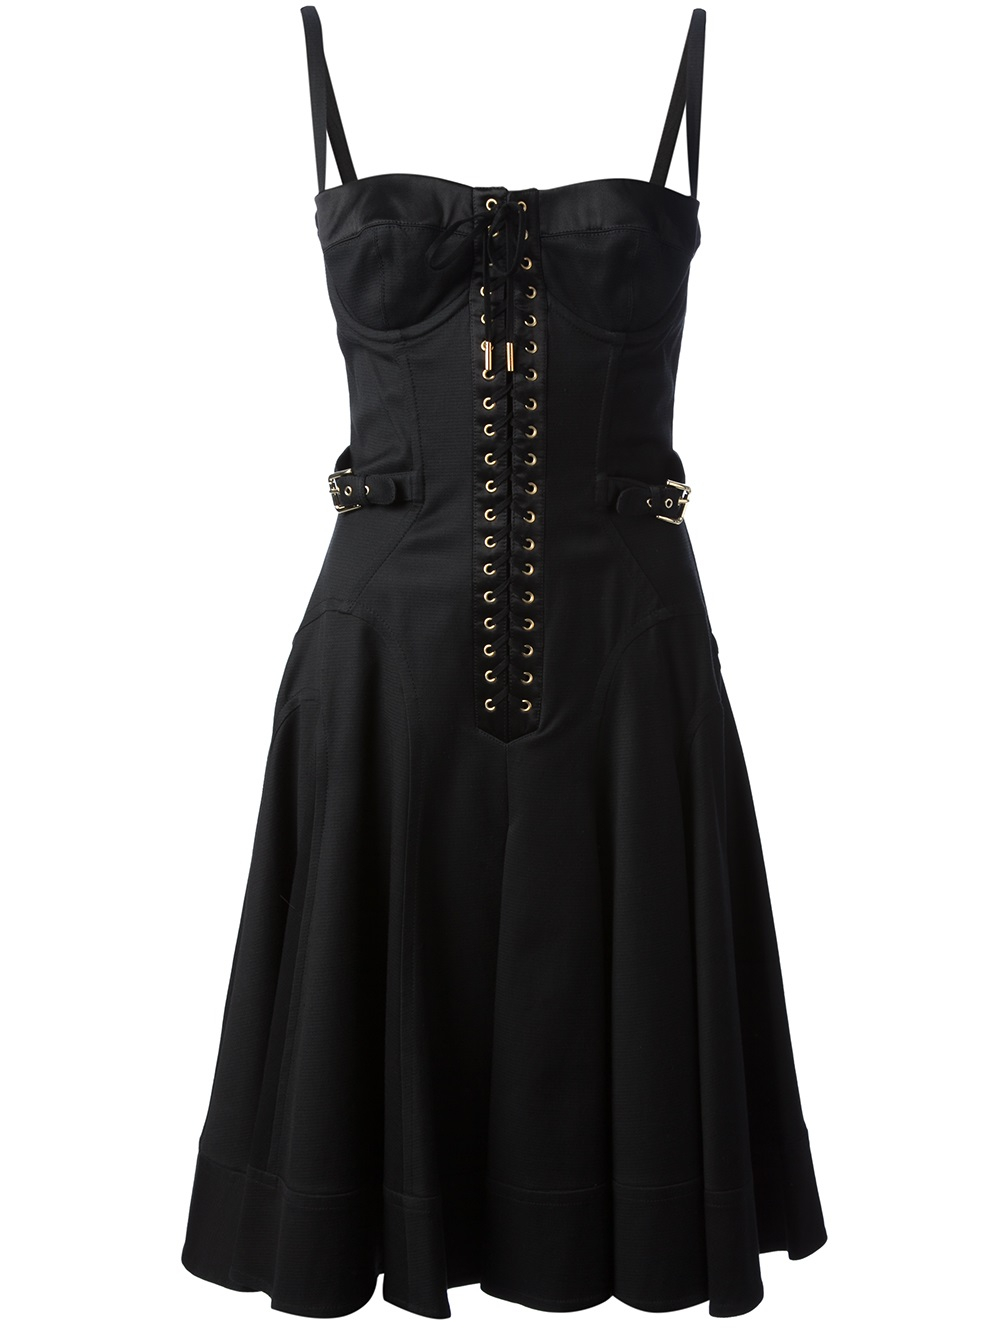 Dolce & Gabbana Vintage Corset Top Dress in Black | Lyst